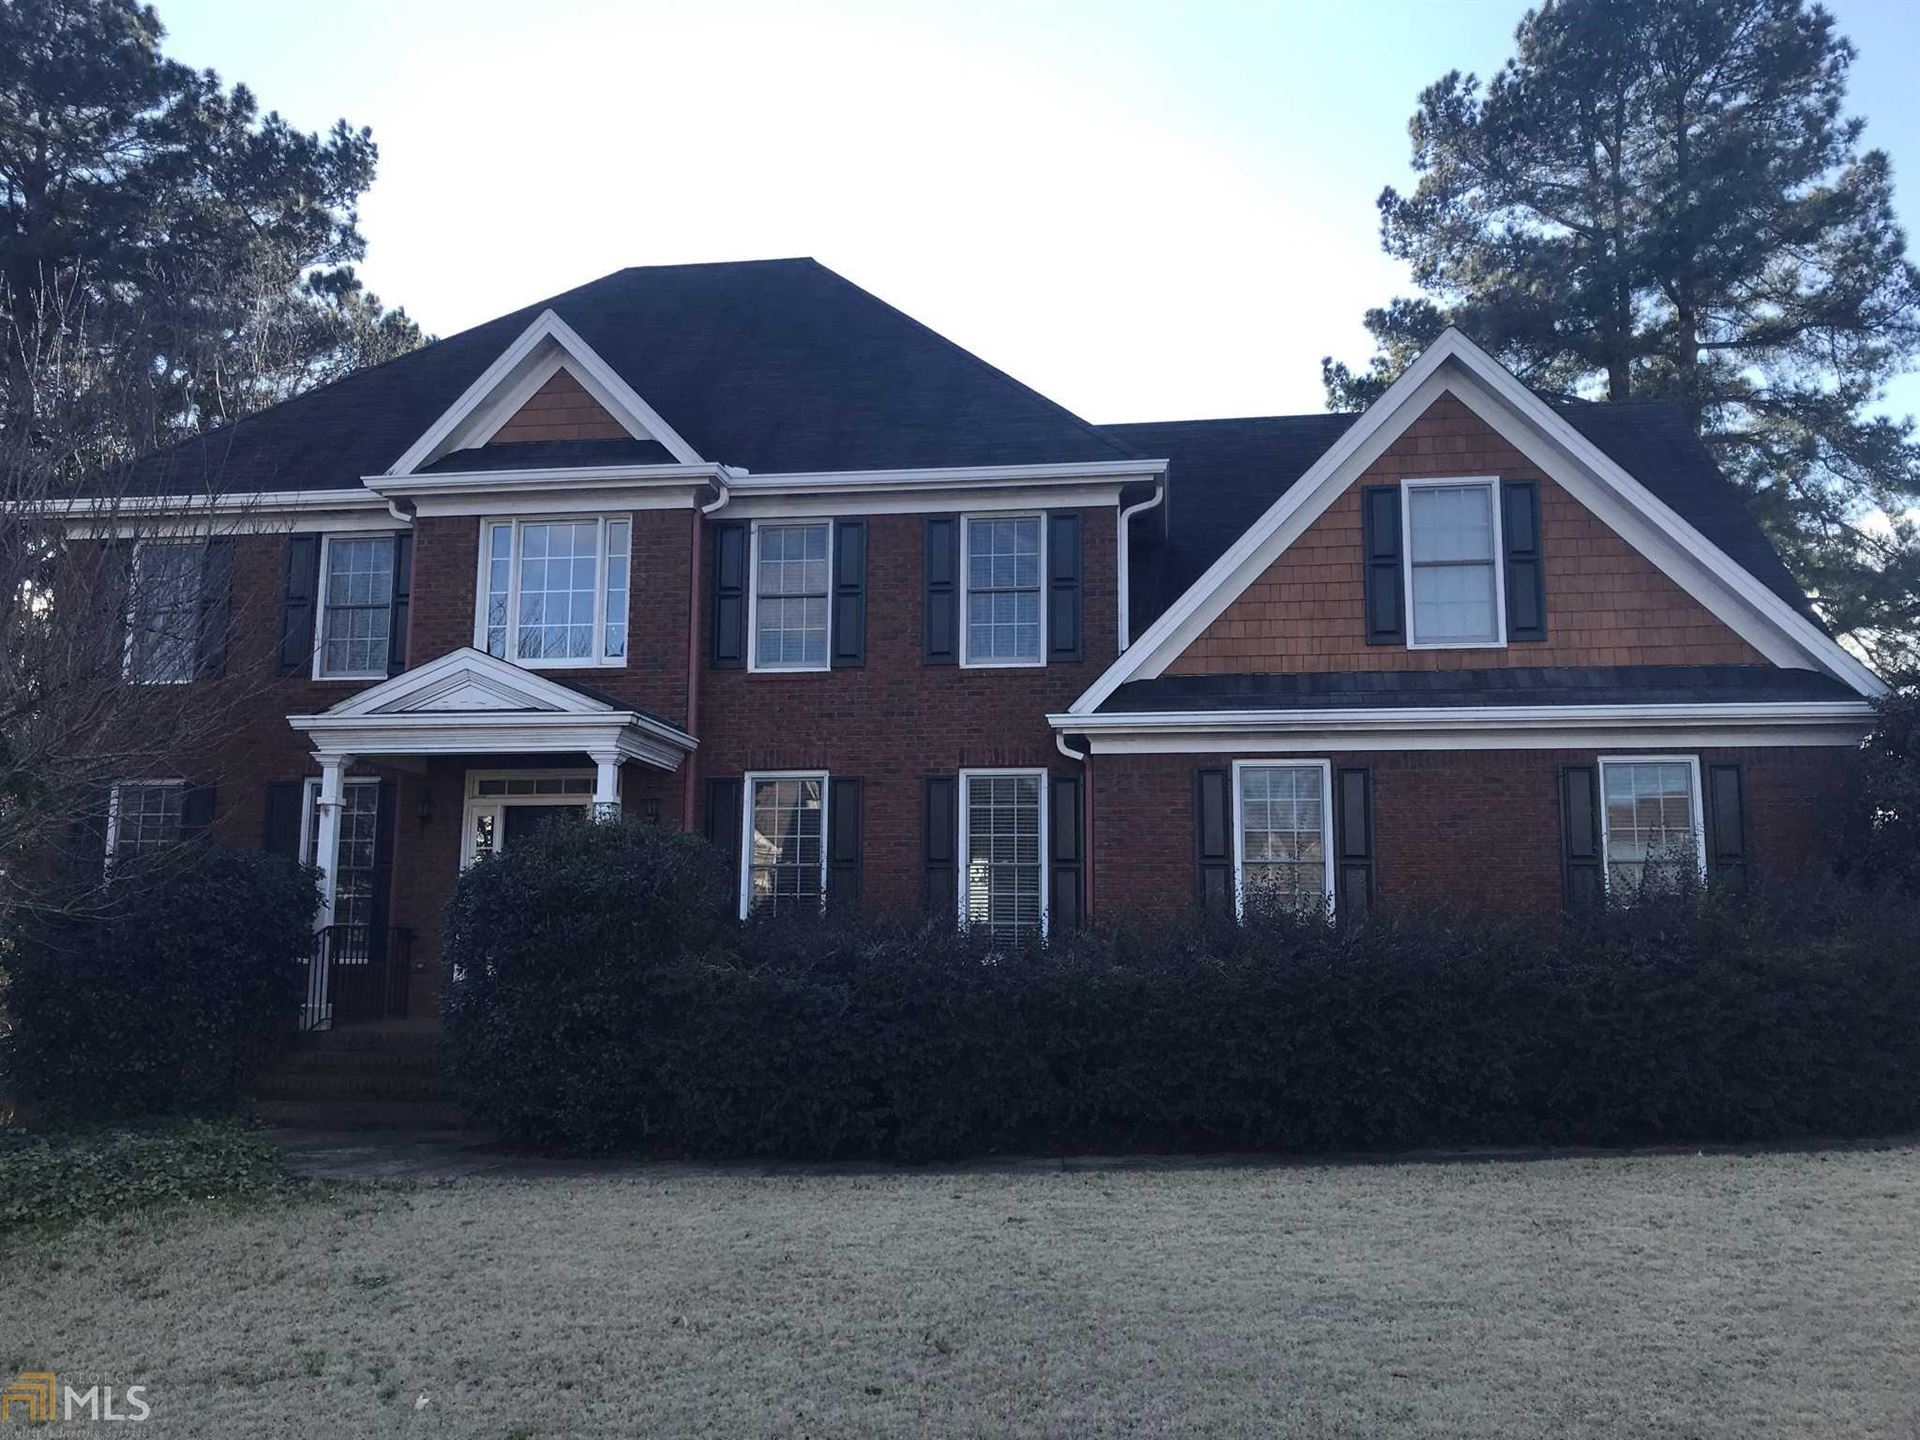 8785 Stone River Dr, Gainesville, GA 30506 - MLS#: 8914108